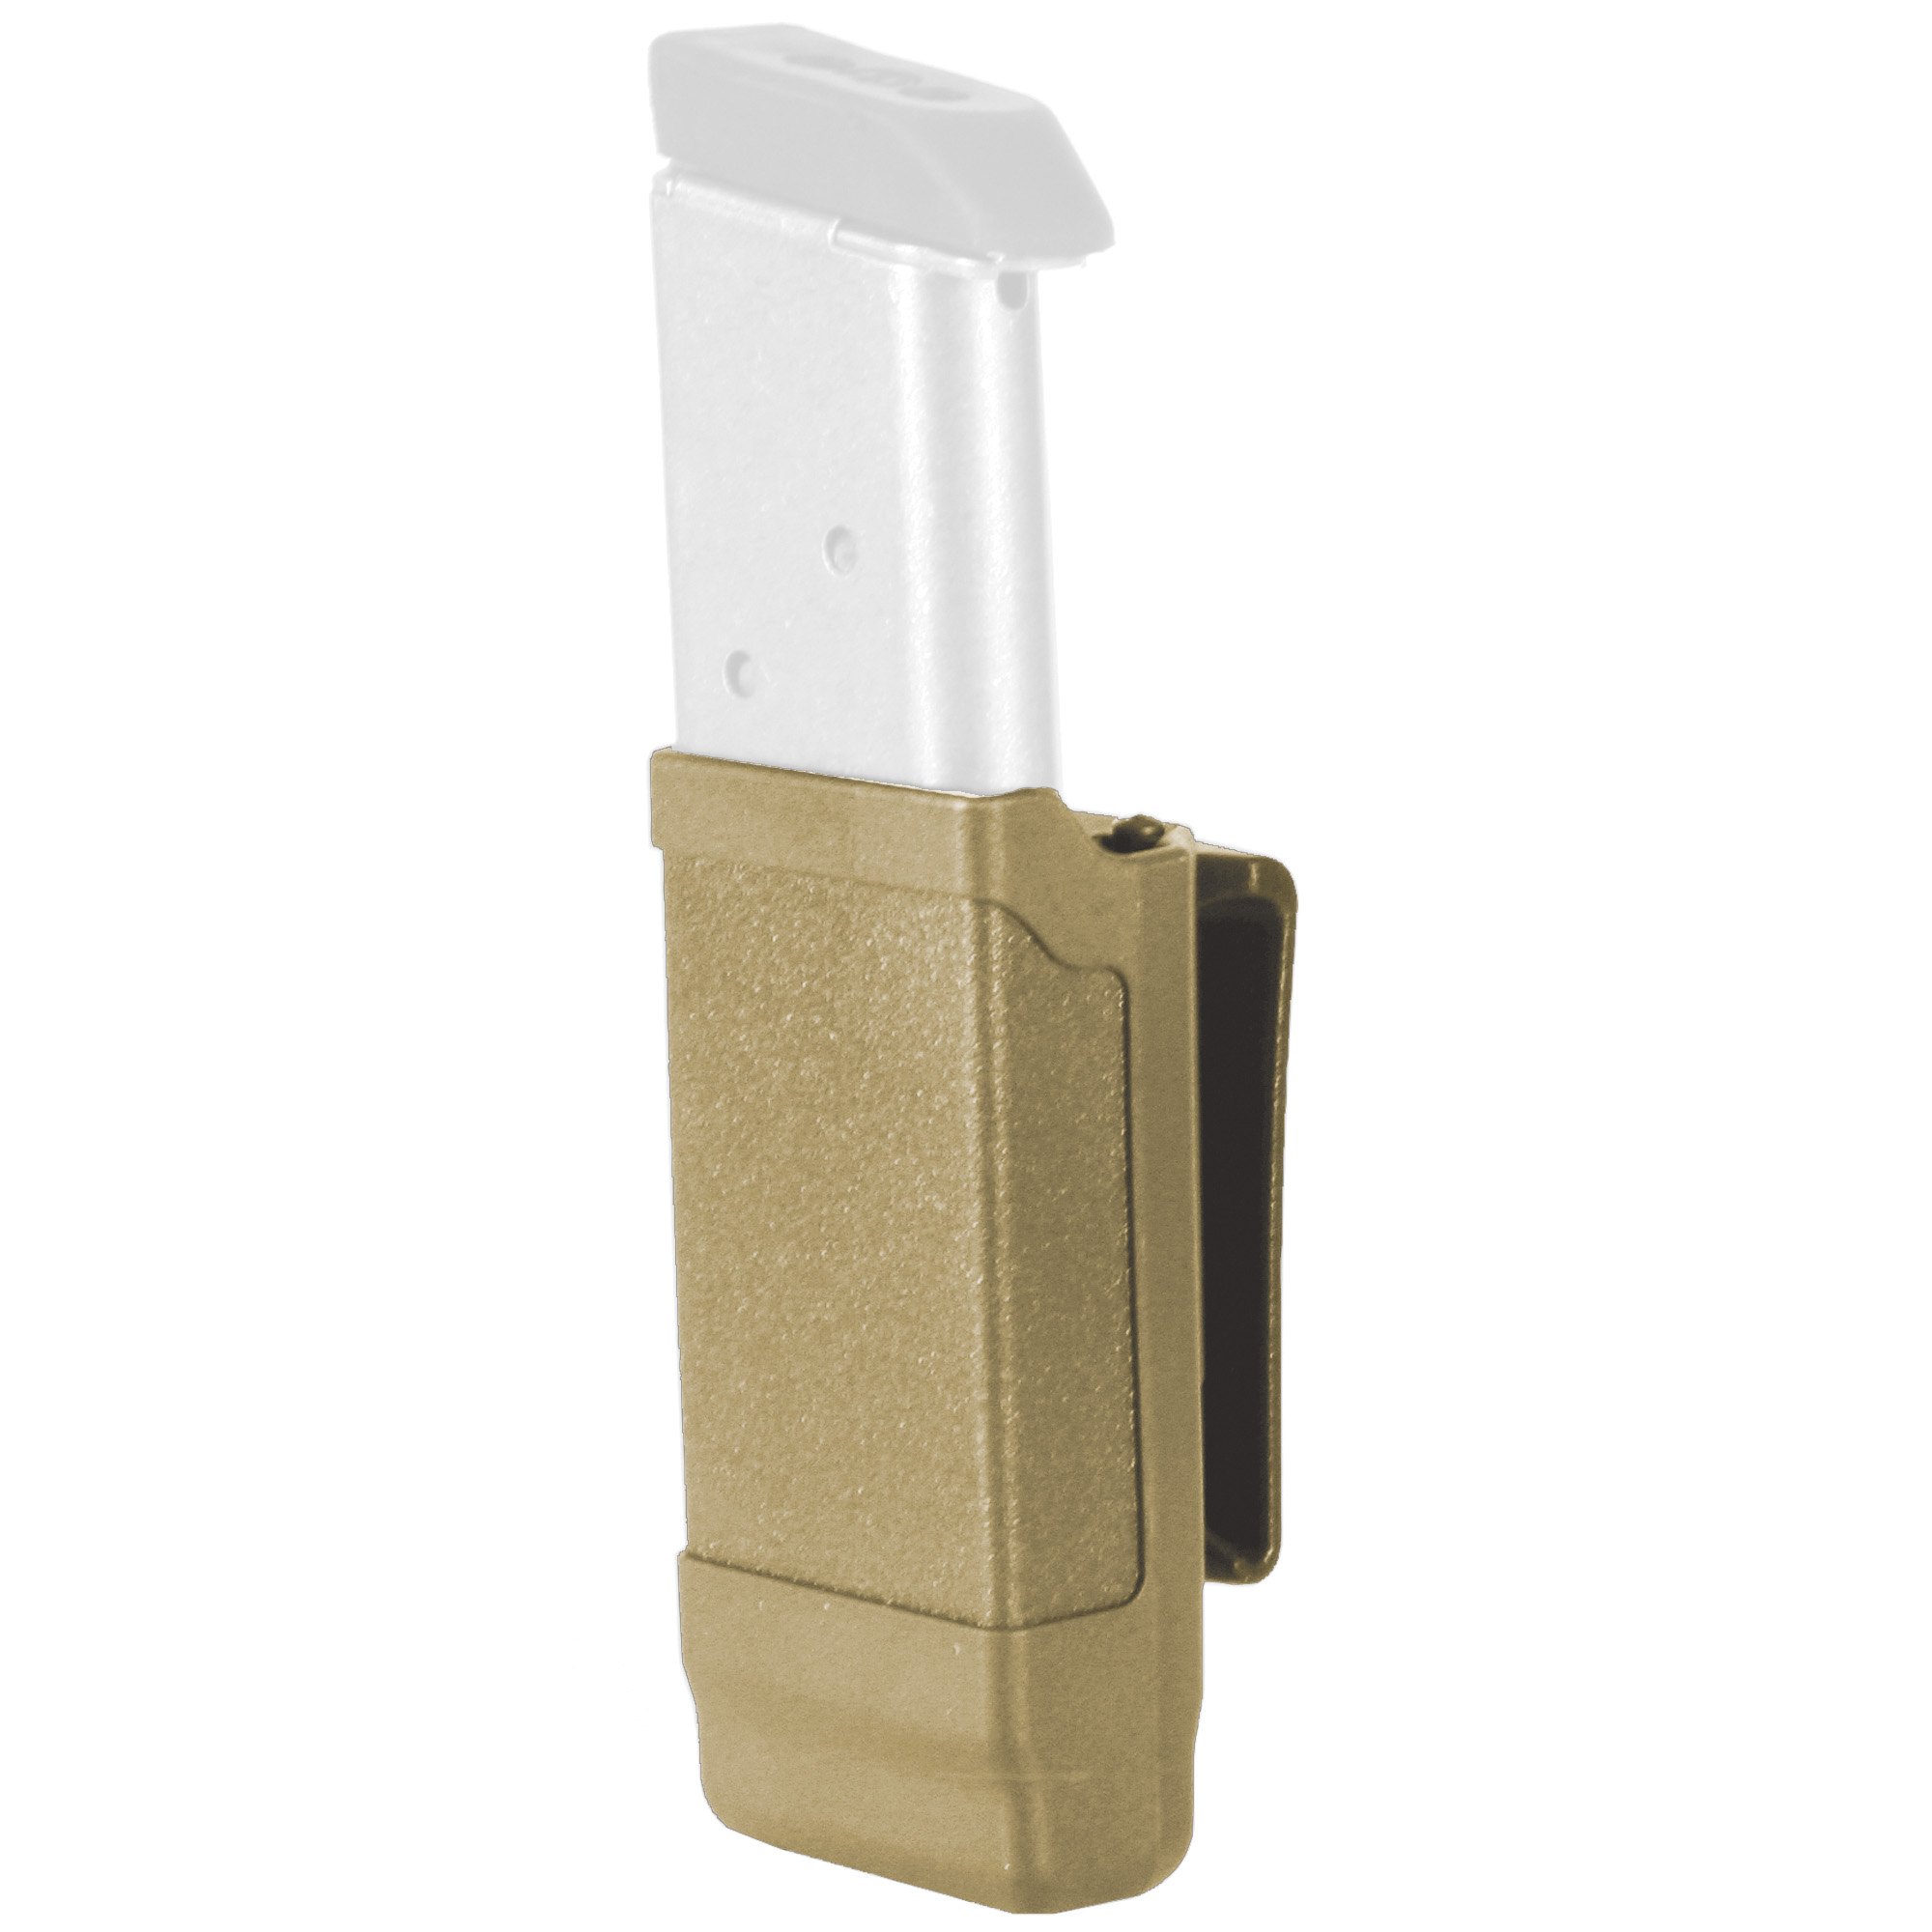 "Their Single Mag Cases feature a built-in tension spring to securely hold magazines of various sizes. For two magazines on the same carrier"" you can remove the belt clip and place two Single Mag Cases side-by-side on Their Dual Rail Accessory Platform (sold separately). The case can also be placed next to one of their light carriers for a combo light/mag carrier."